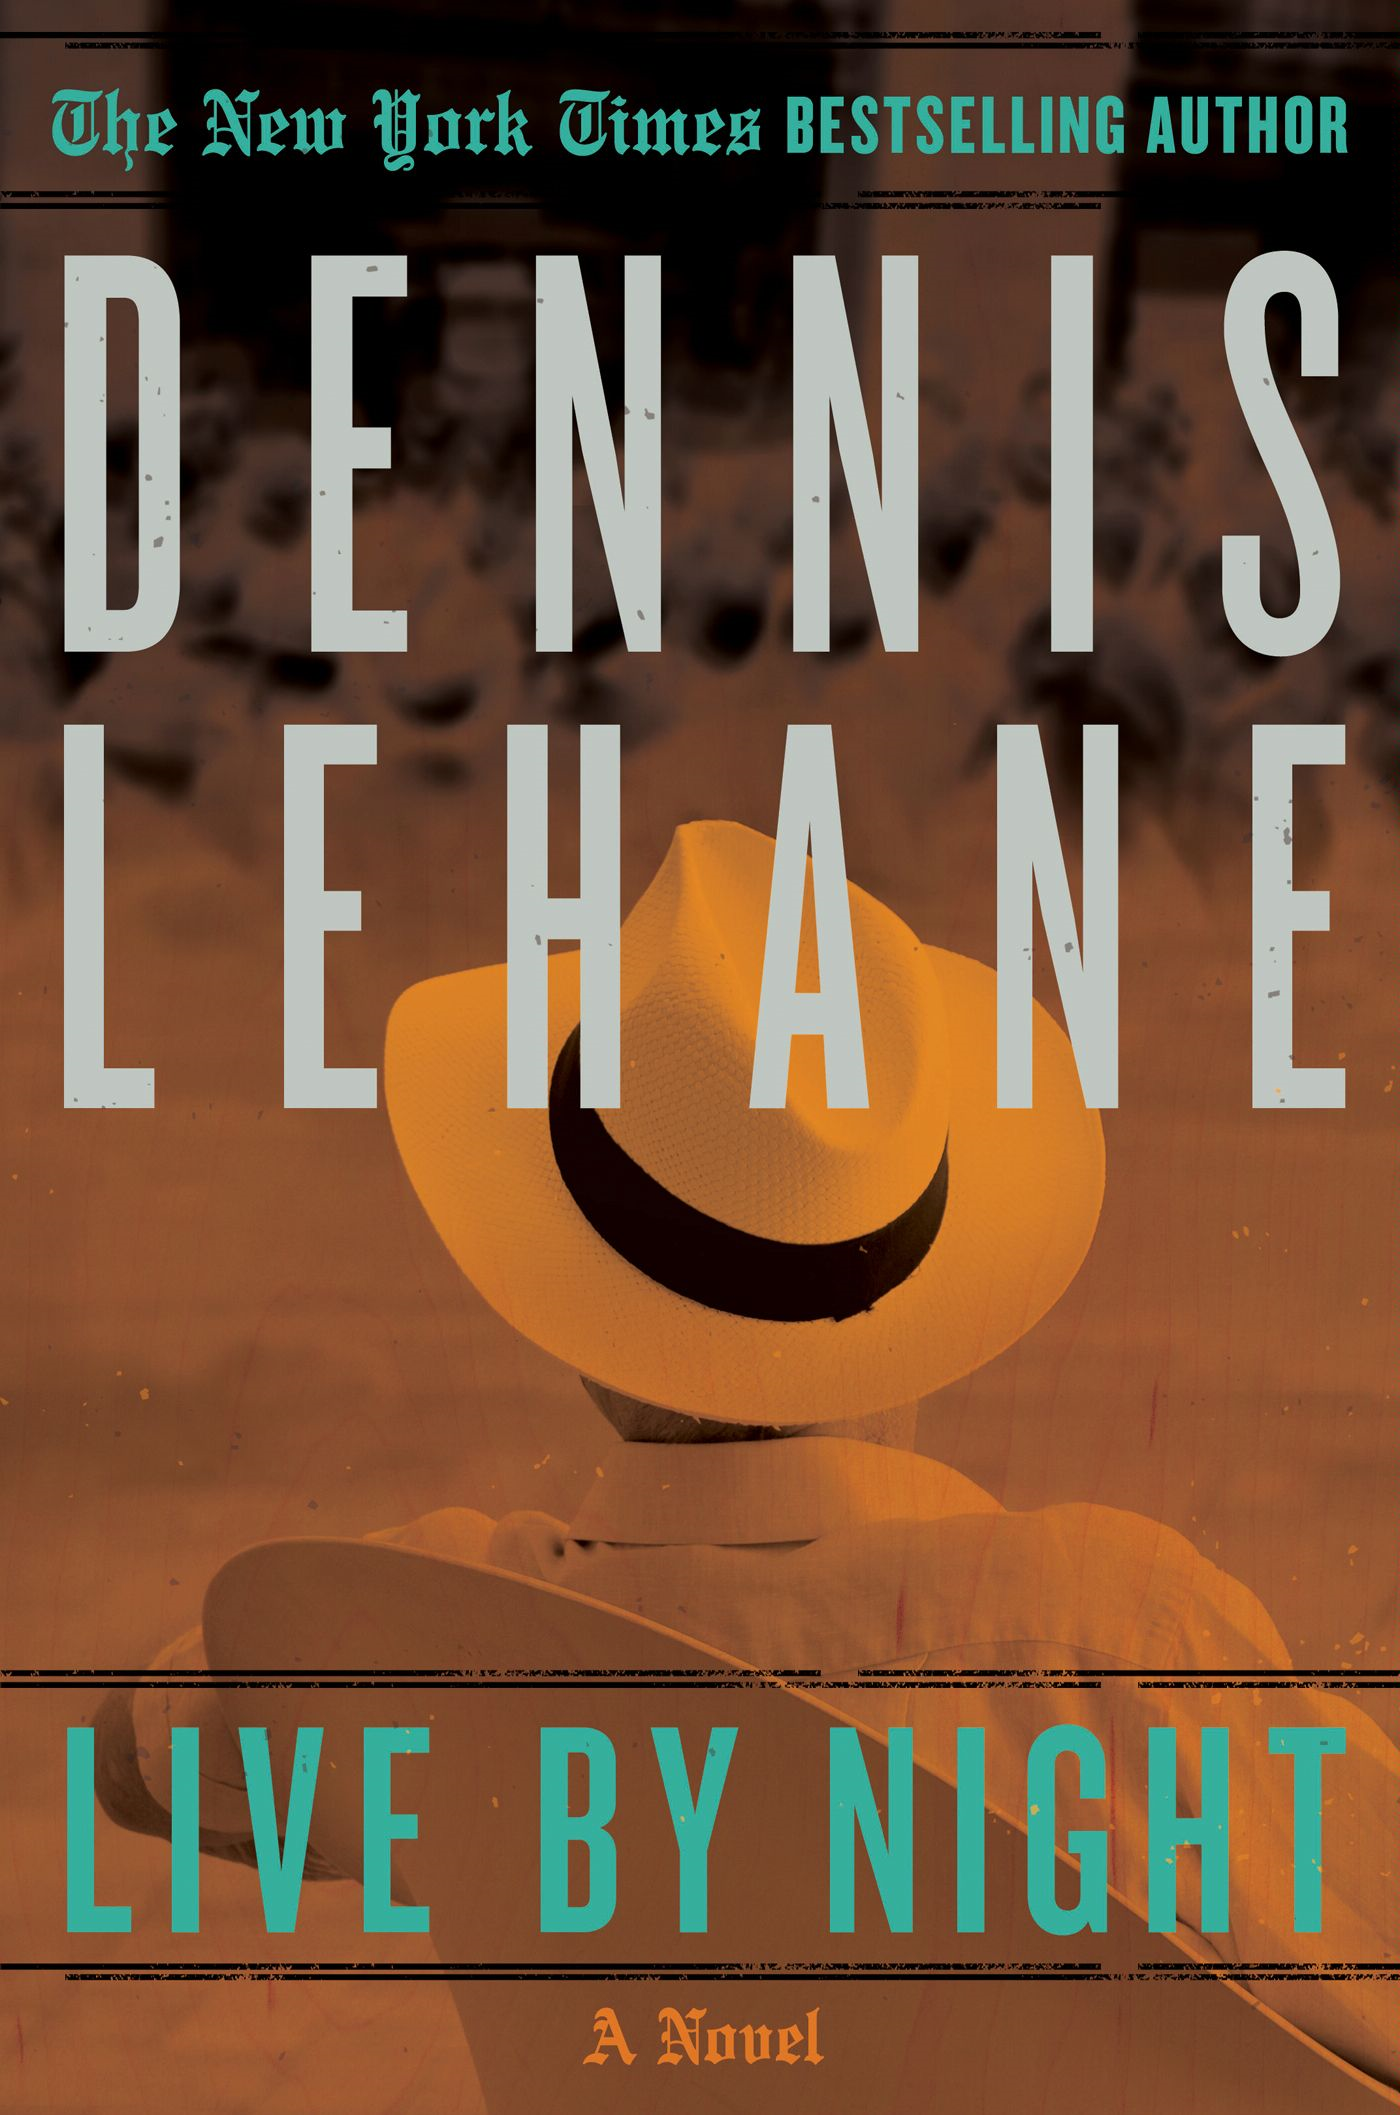 Live by Night By: Dennis Lehane